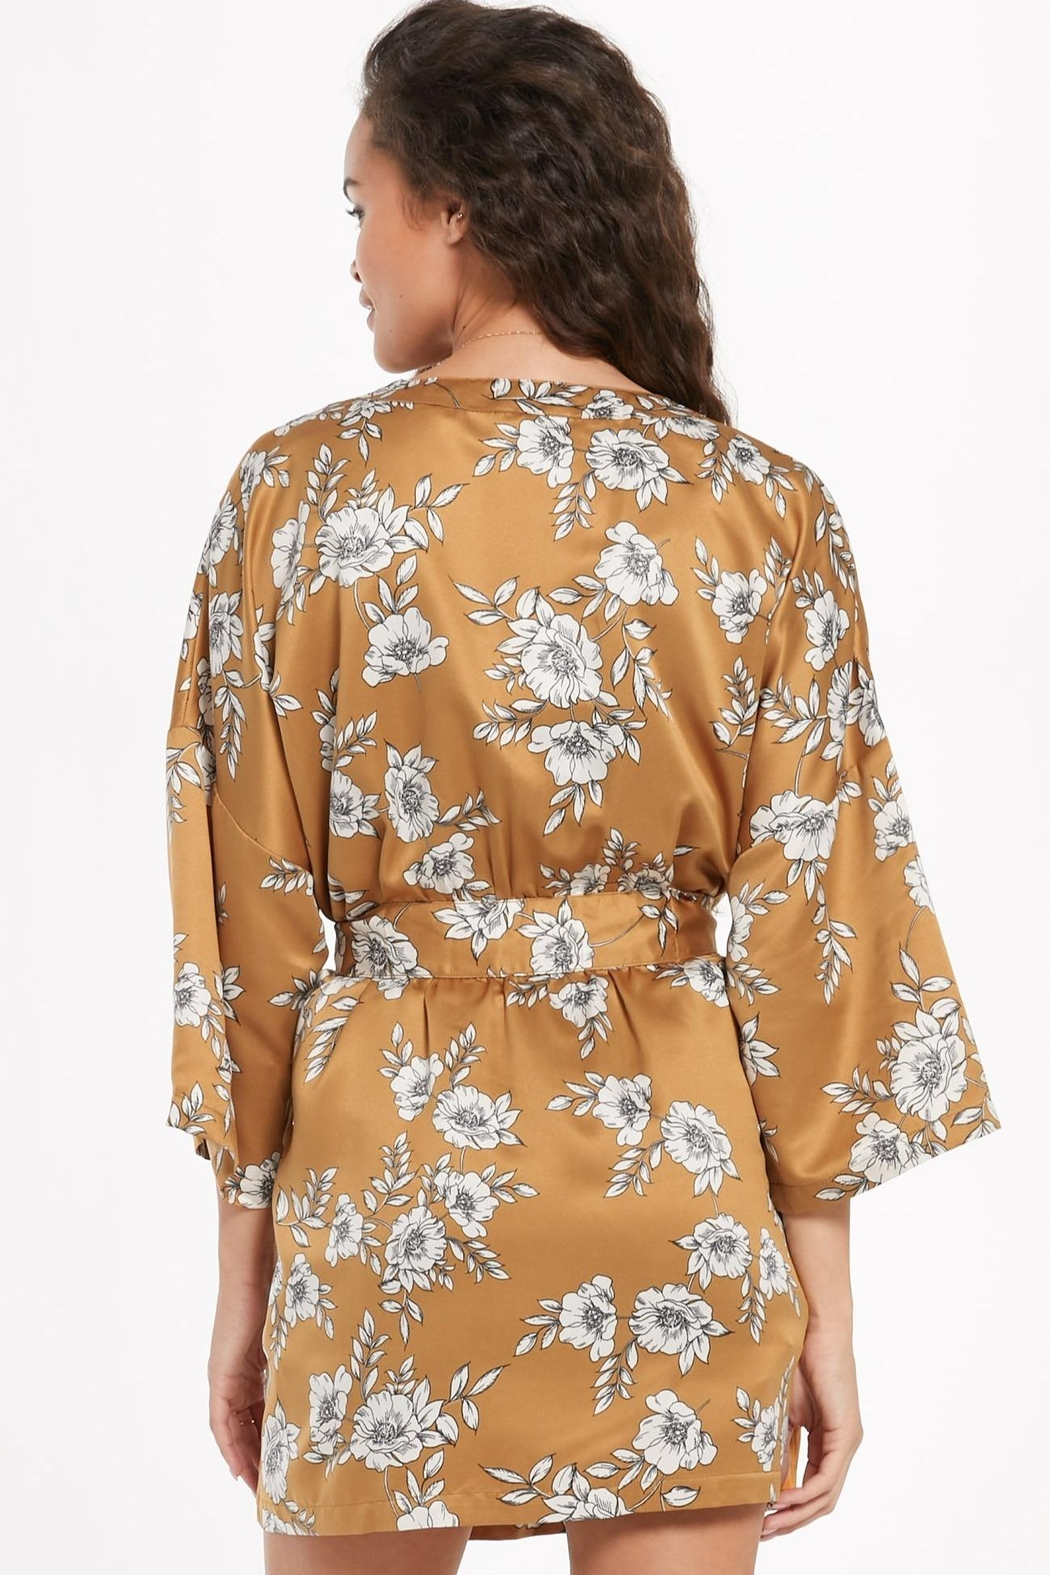 z supply Vacay Floral Satin Robe - Front Full Image